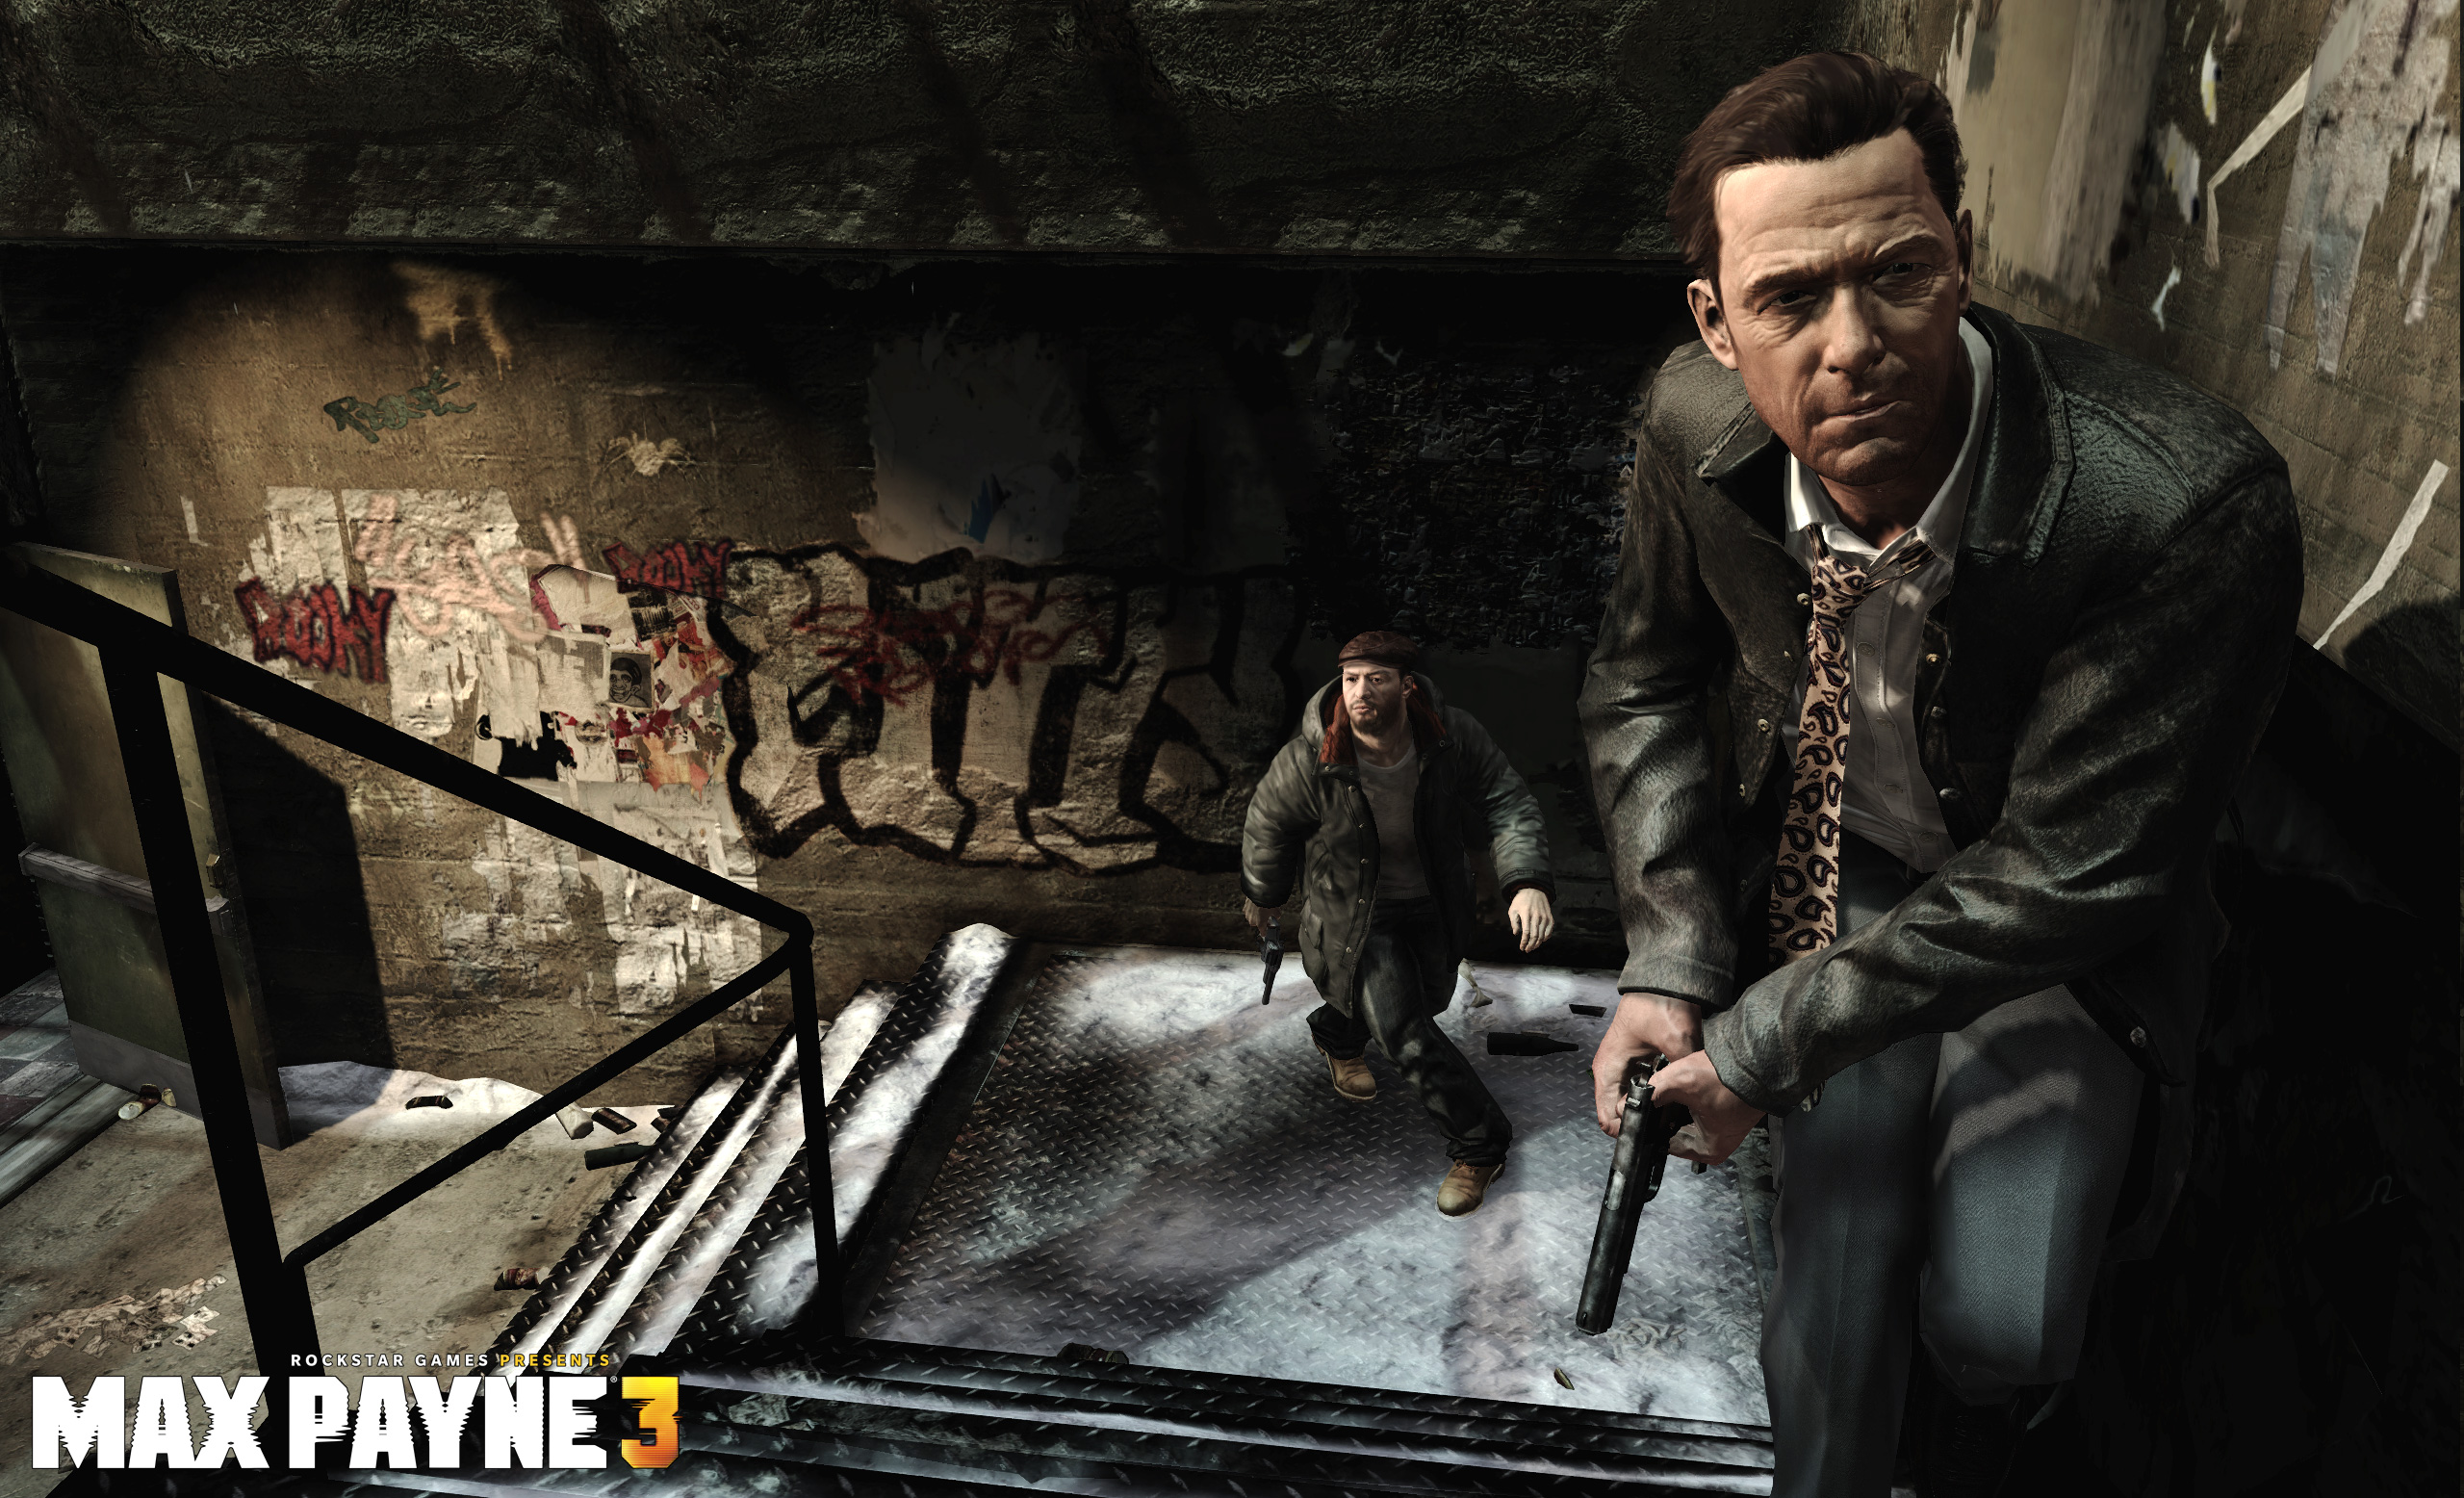 Max Payne 3 For Pc New Screens And Details Including System Specs And Digital Pre Order Info Rockstar Games